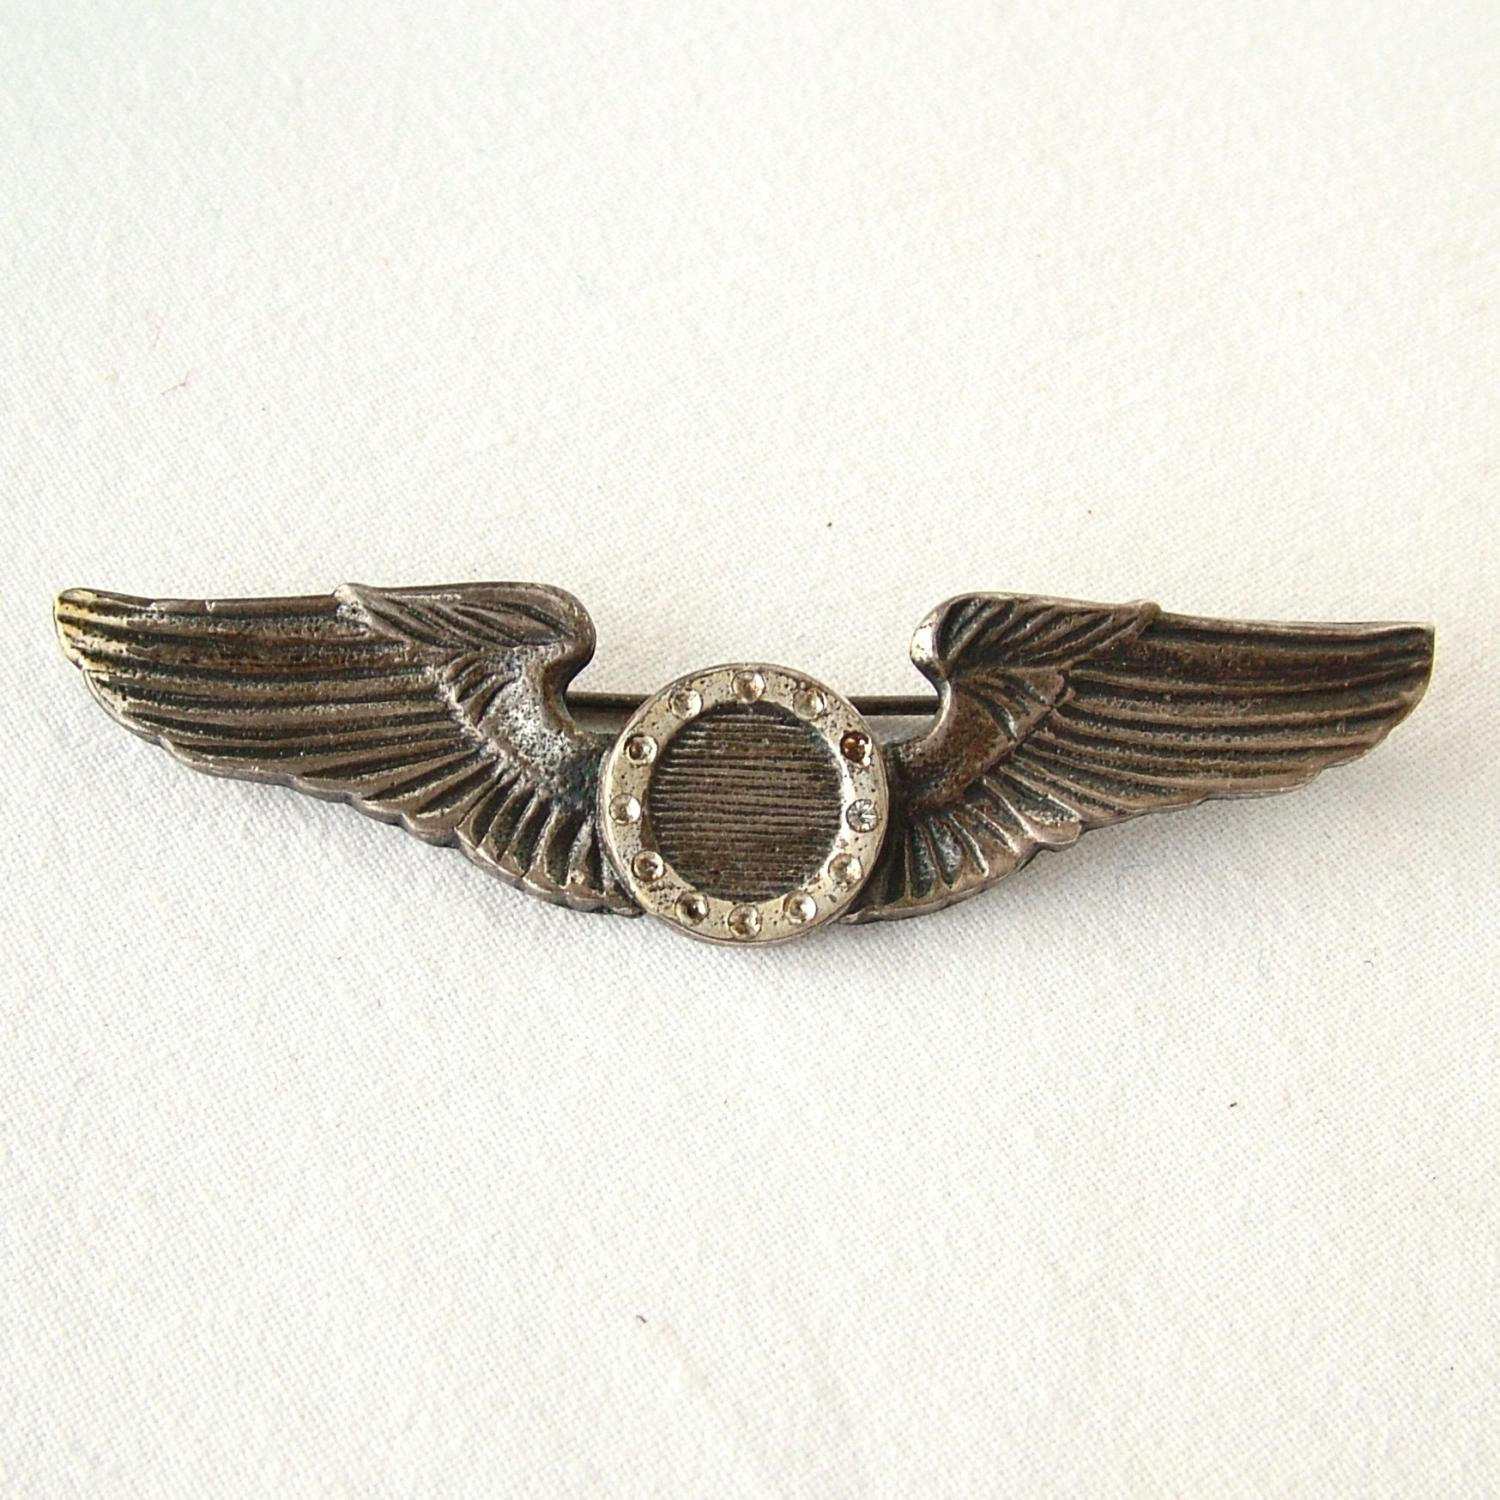 USAAF Sweetheart Observer Wing